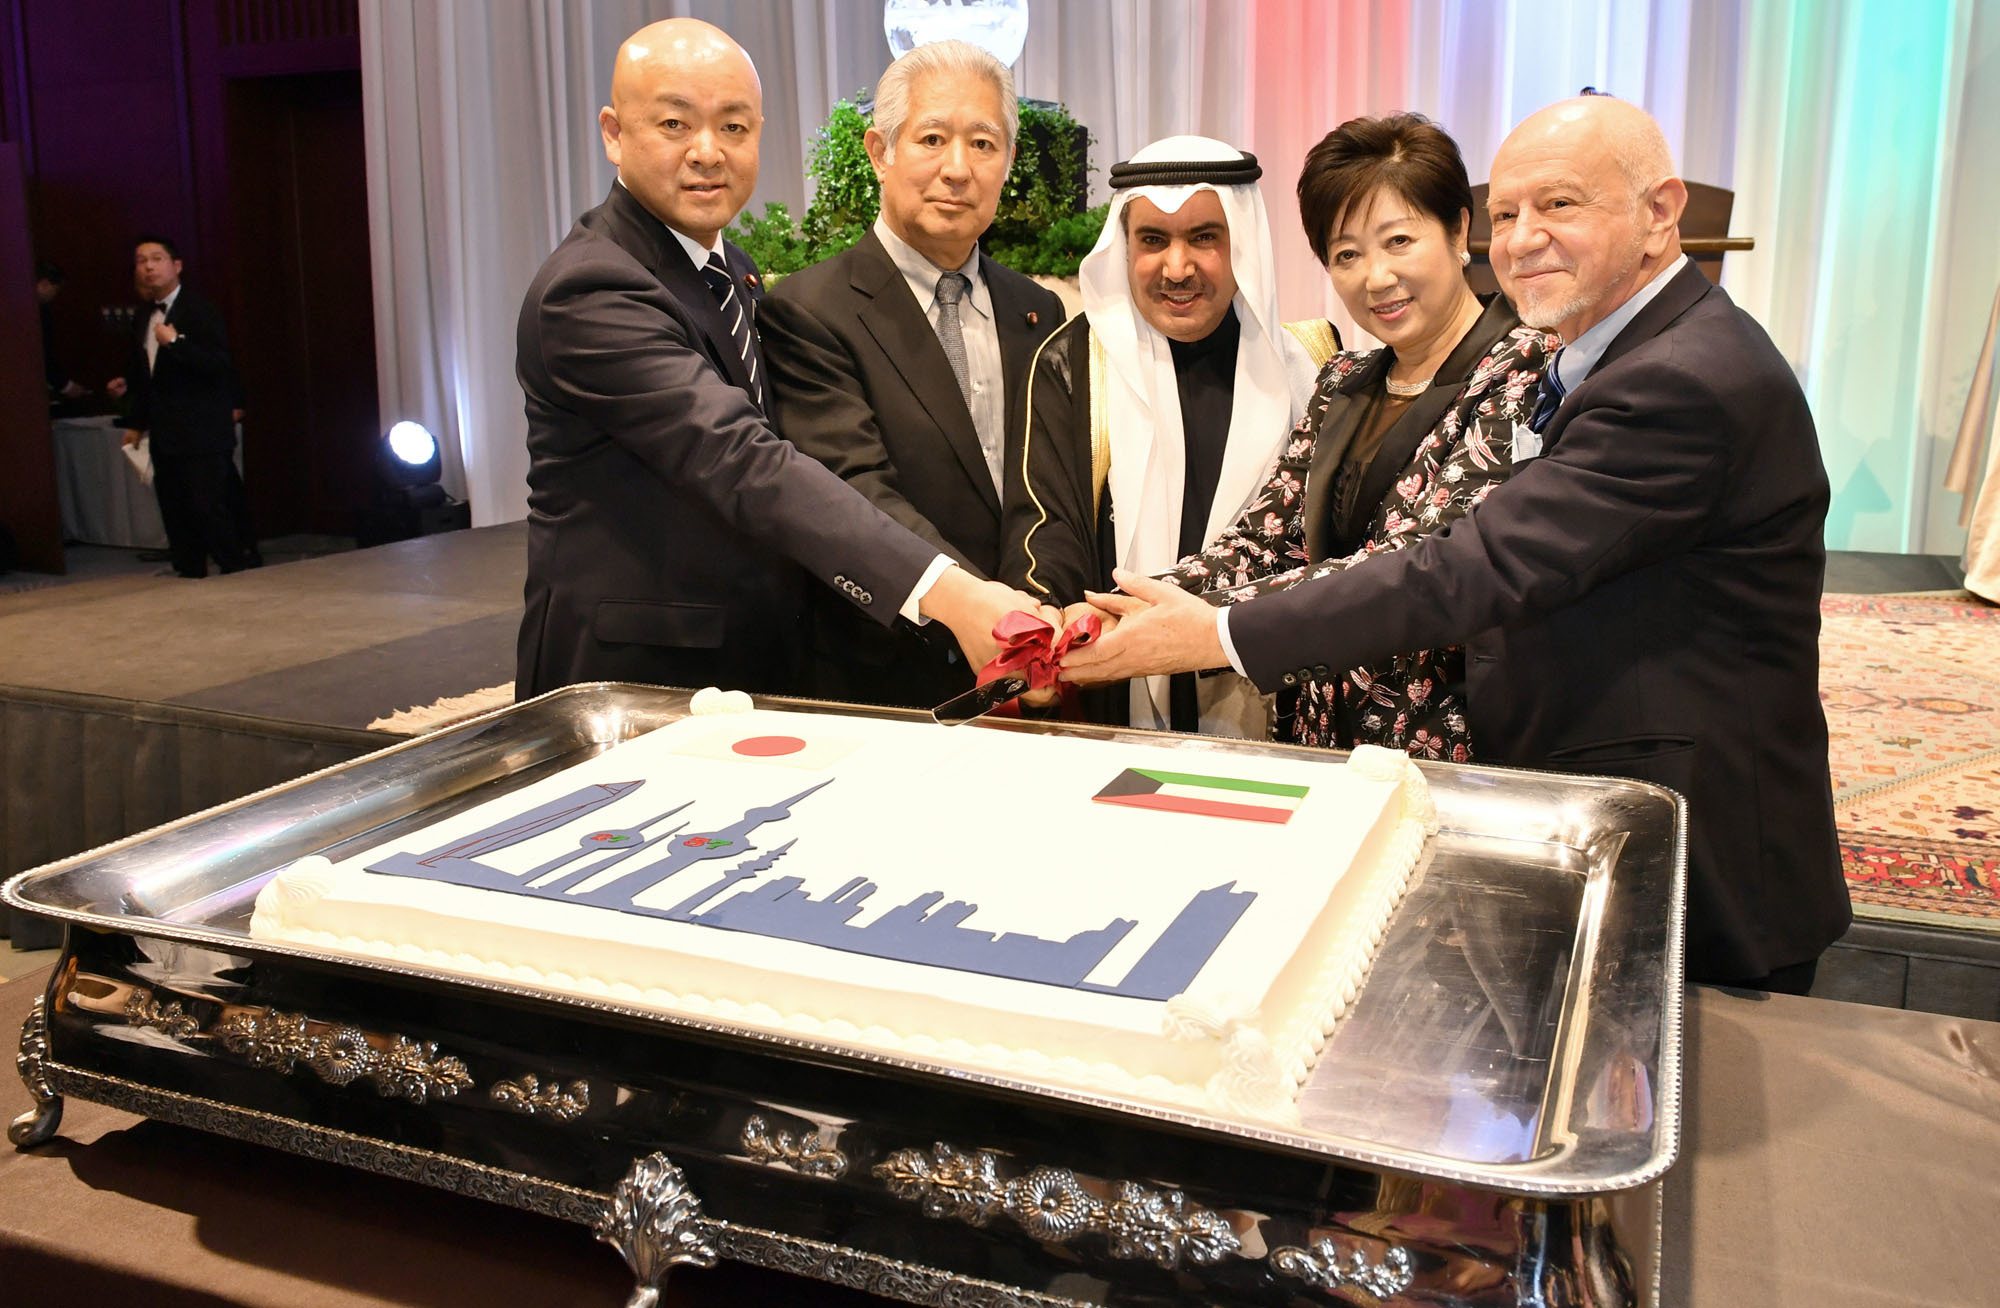 Kuwaiti Ambassador Abdul Rahman Humood Al-Otaibi (center) cuts a cake with (from left) Parliamentary Vice-Minister for Foreign Affairs Manabu Horii, Japan-Kuwait Parliamentary Friendship League Chairman Eisuke Mori, Tokyo Gov. Yuriko Koike and Manlio Cadelo, dean of the Diplomatic Corps, during a reception to celebrate the country's national day at Palace Hotel on Feb. 22. |  YOSHIAKI MIURA